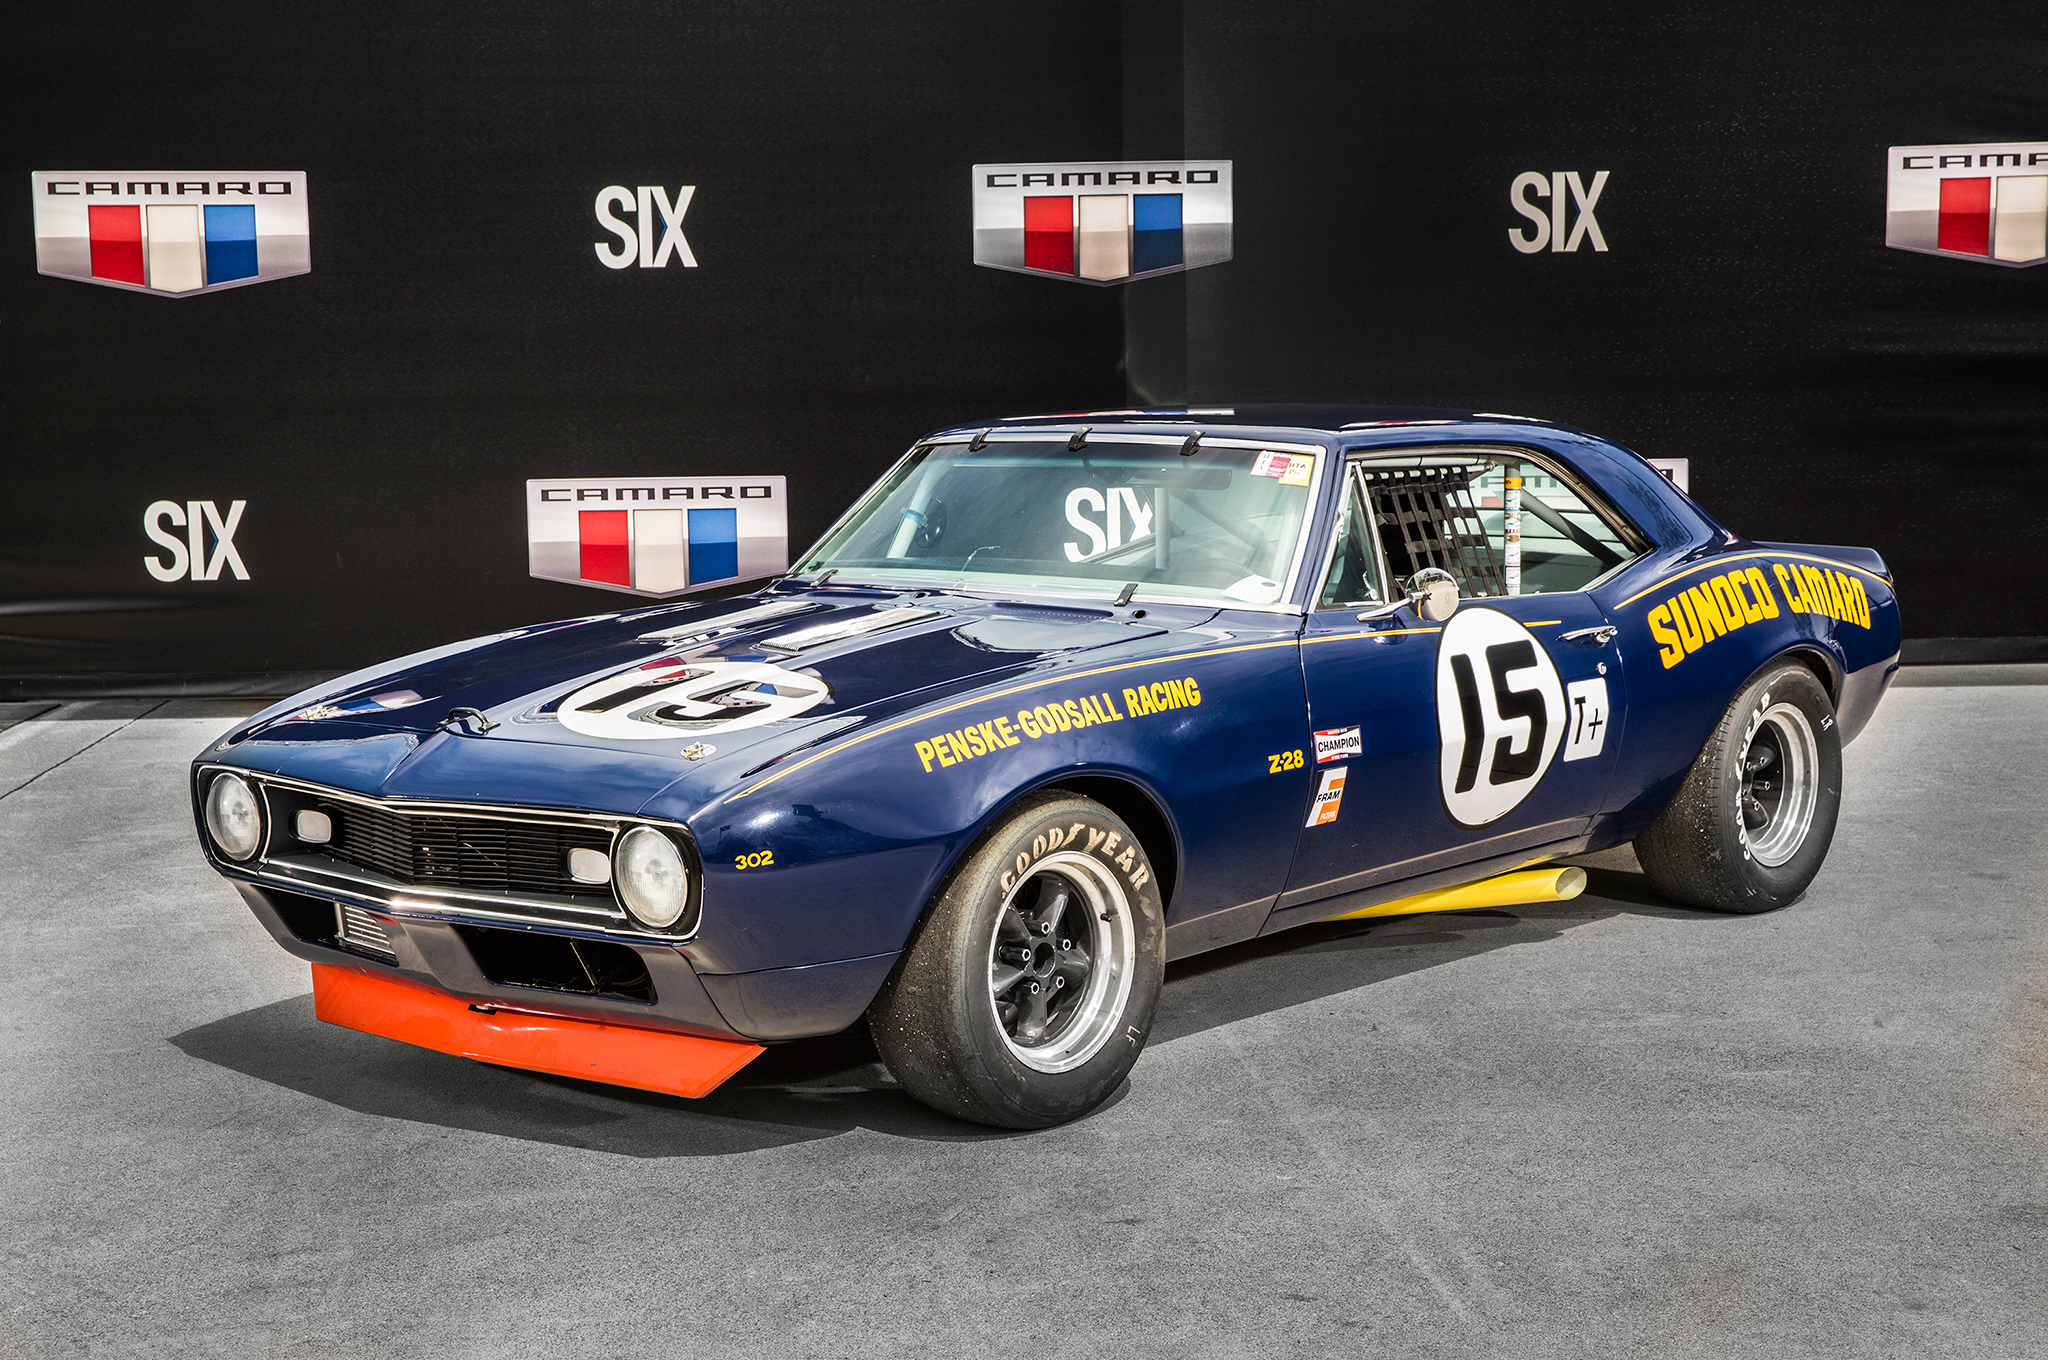 After an inauspicious start with the 1967 Camaro, the Penske racing team experimented with a lightweight body using acid-dipped sheetmetal. It worked, and the car was updated with 1968 Camaro body components in an effort to field two cars at the Sebring 12-hour race that year. This car, owned by Patrick Ryan, has been restored to its 1968 Sebring appearance, where it won the Trans-Am class and finished Third overall.